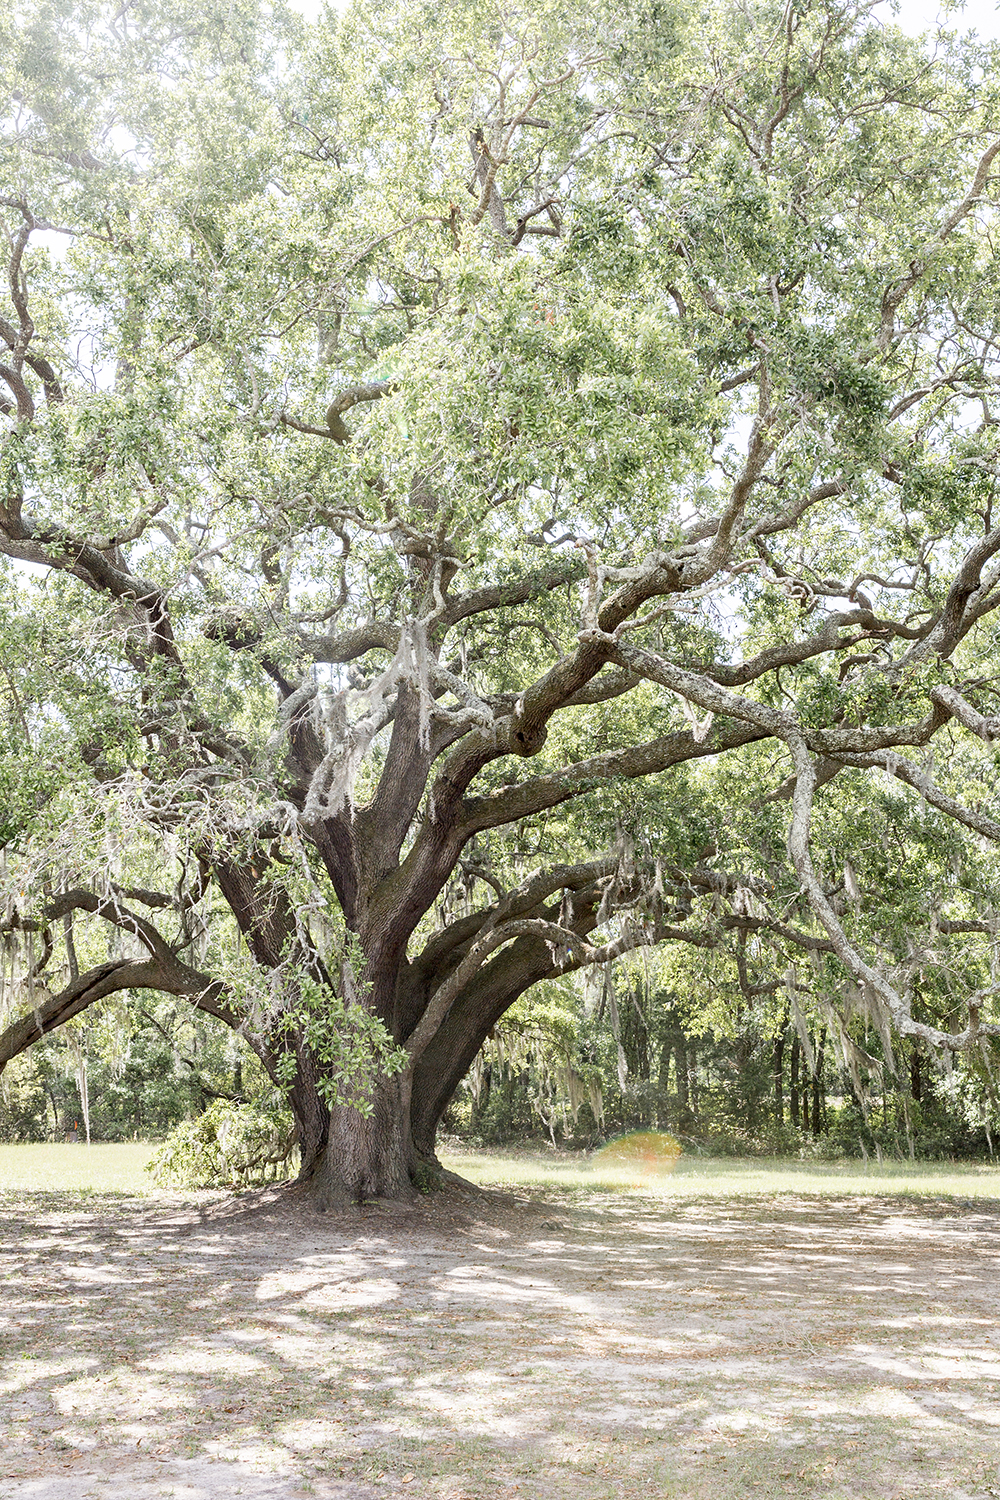 Charleston Tea Plantation on Wadmalaw Island in South Carolina